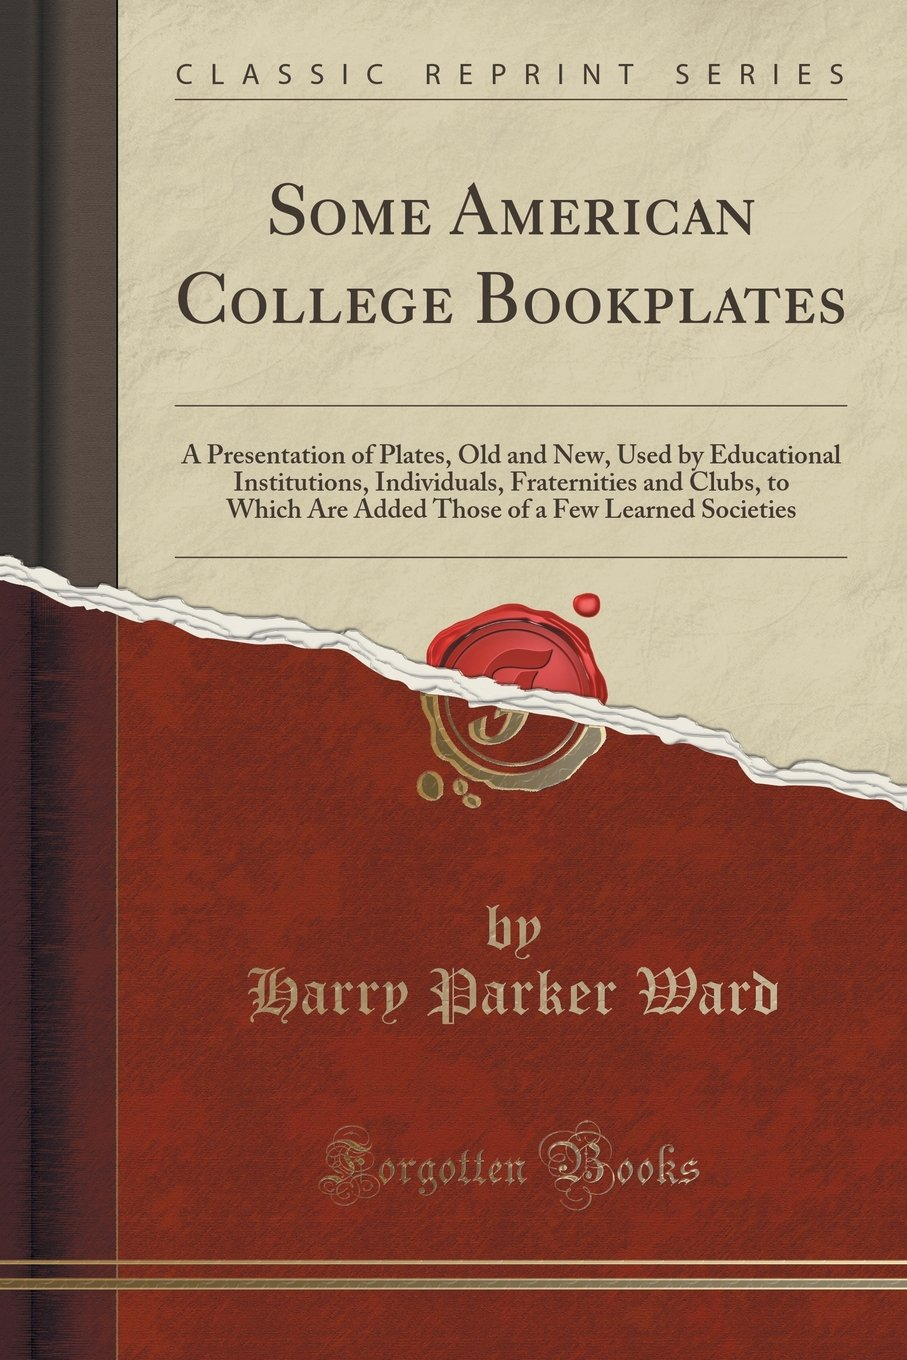 Some American College Bookplates: A Presentation of Plates, Old and New, Used by Educational Institutions, Individuals, Fraternities and Clubs, to ... of a Few Learned Societies (Classic Reprint) ebook